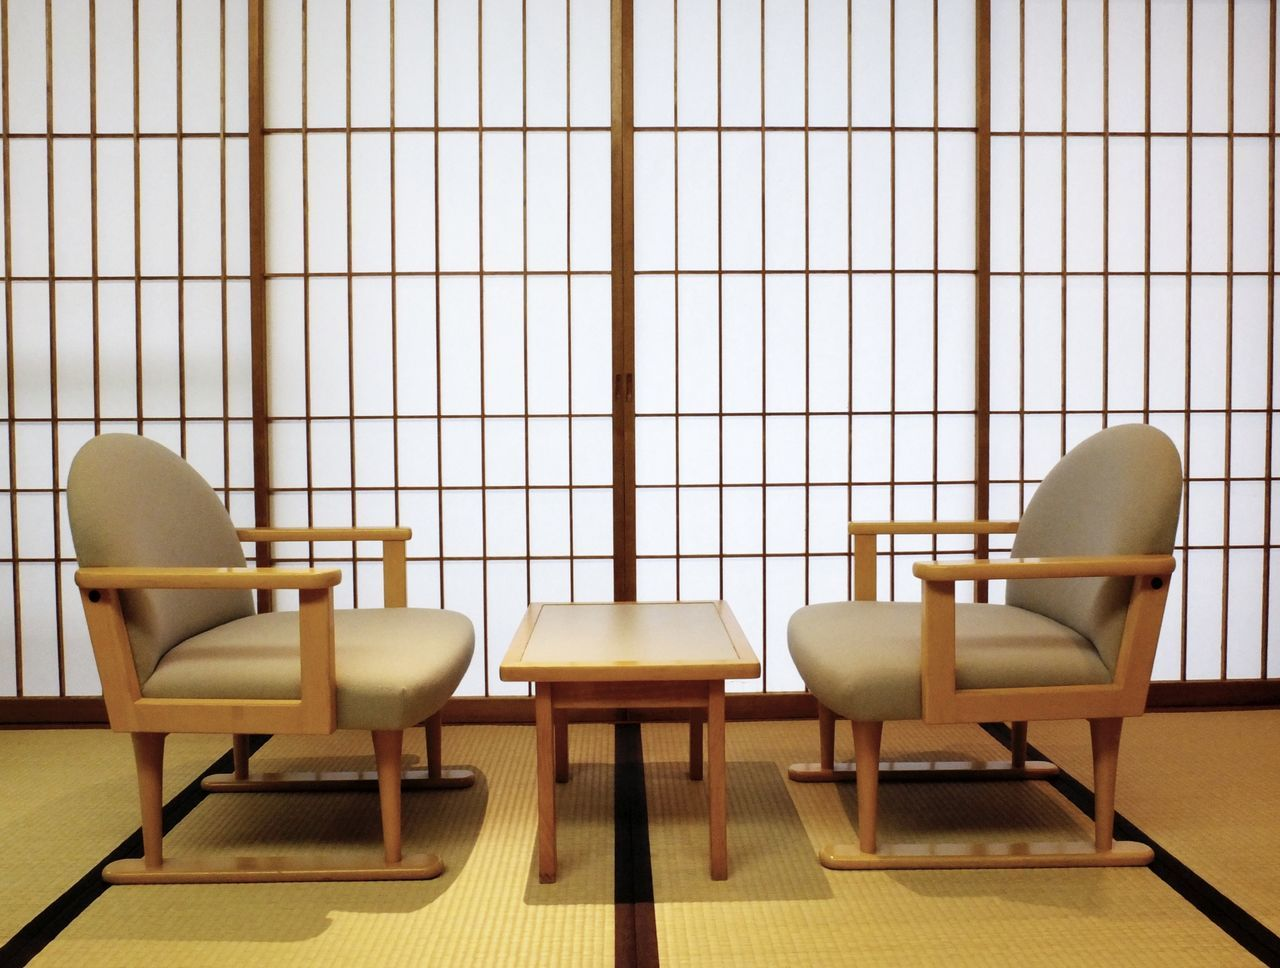 Japanese room: Tatami, shoji sliding doors, table and chairs Architecture Architecture Chair Cultures Day Door Indoors  Japan Japan Photography Japanese  Japanese Culture Japanese Room Japanese Style Modern No People Shoji Shoji Screen Sliding Door Table Tatami Tatami Room Traditional Zen